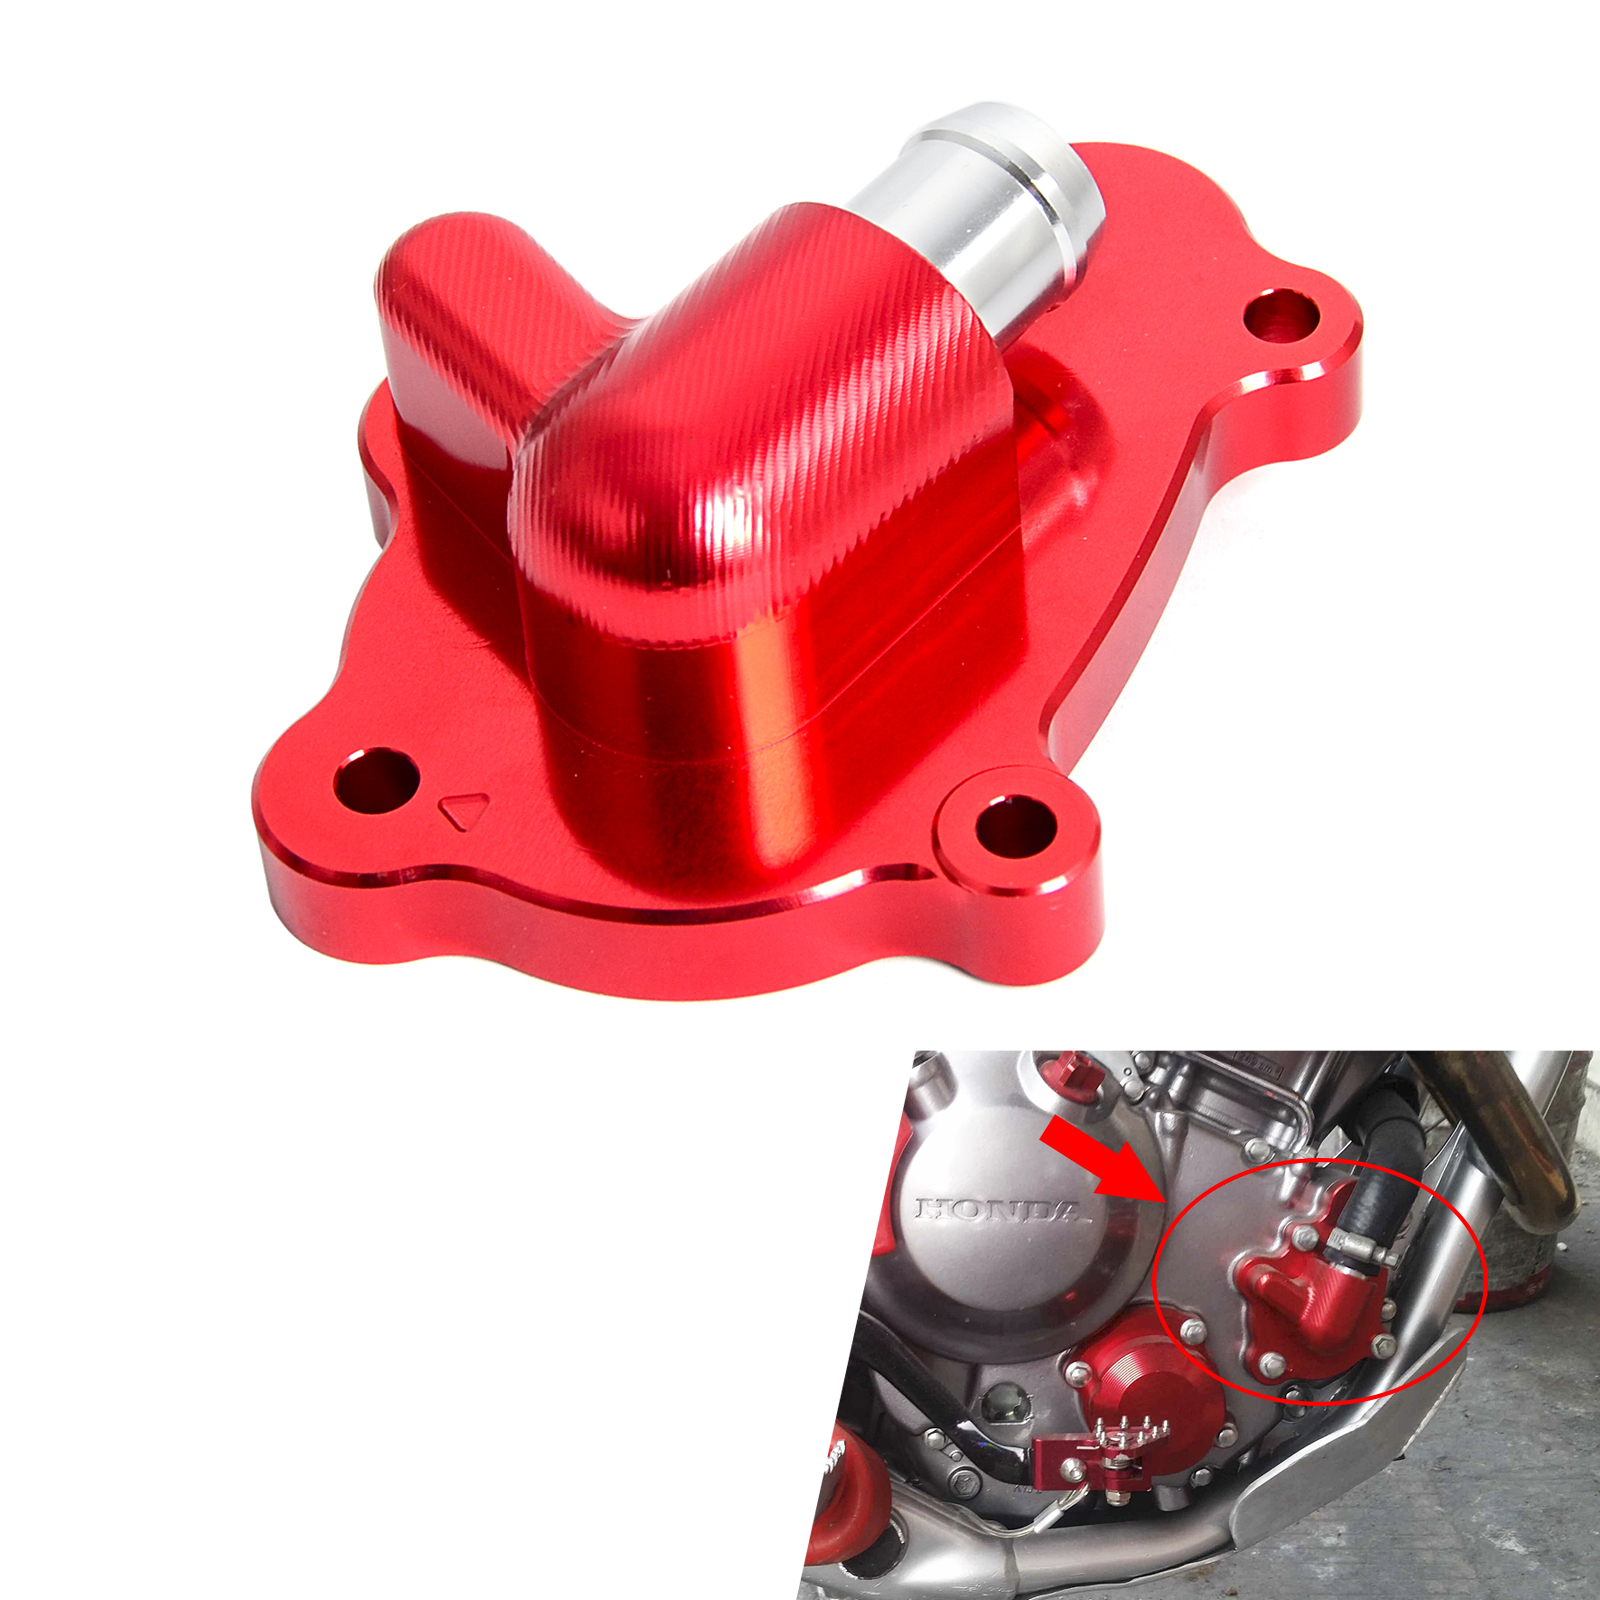 Water Pump Guard Protector Cover For Honda CRF250L/M <font><b>2012</b></font> 2013 2014 2015 CRF250L CRF250M <font><b>CRF</b></font> 250L 250M image